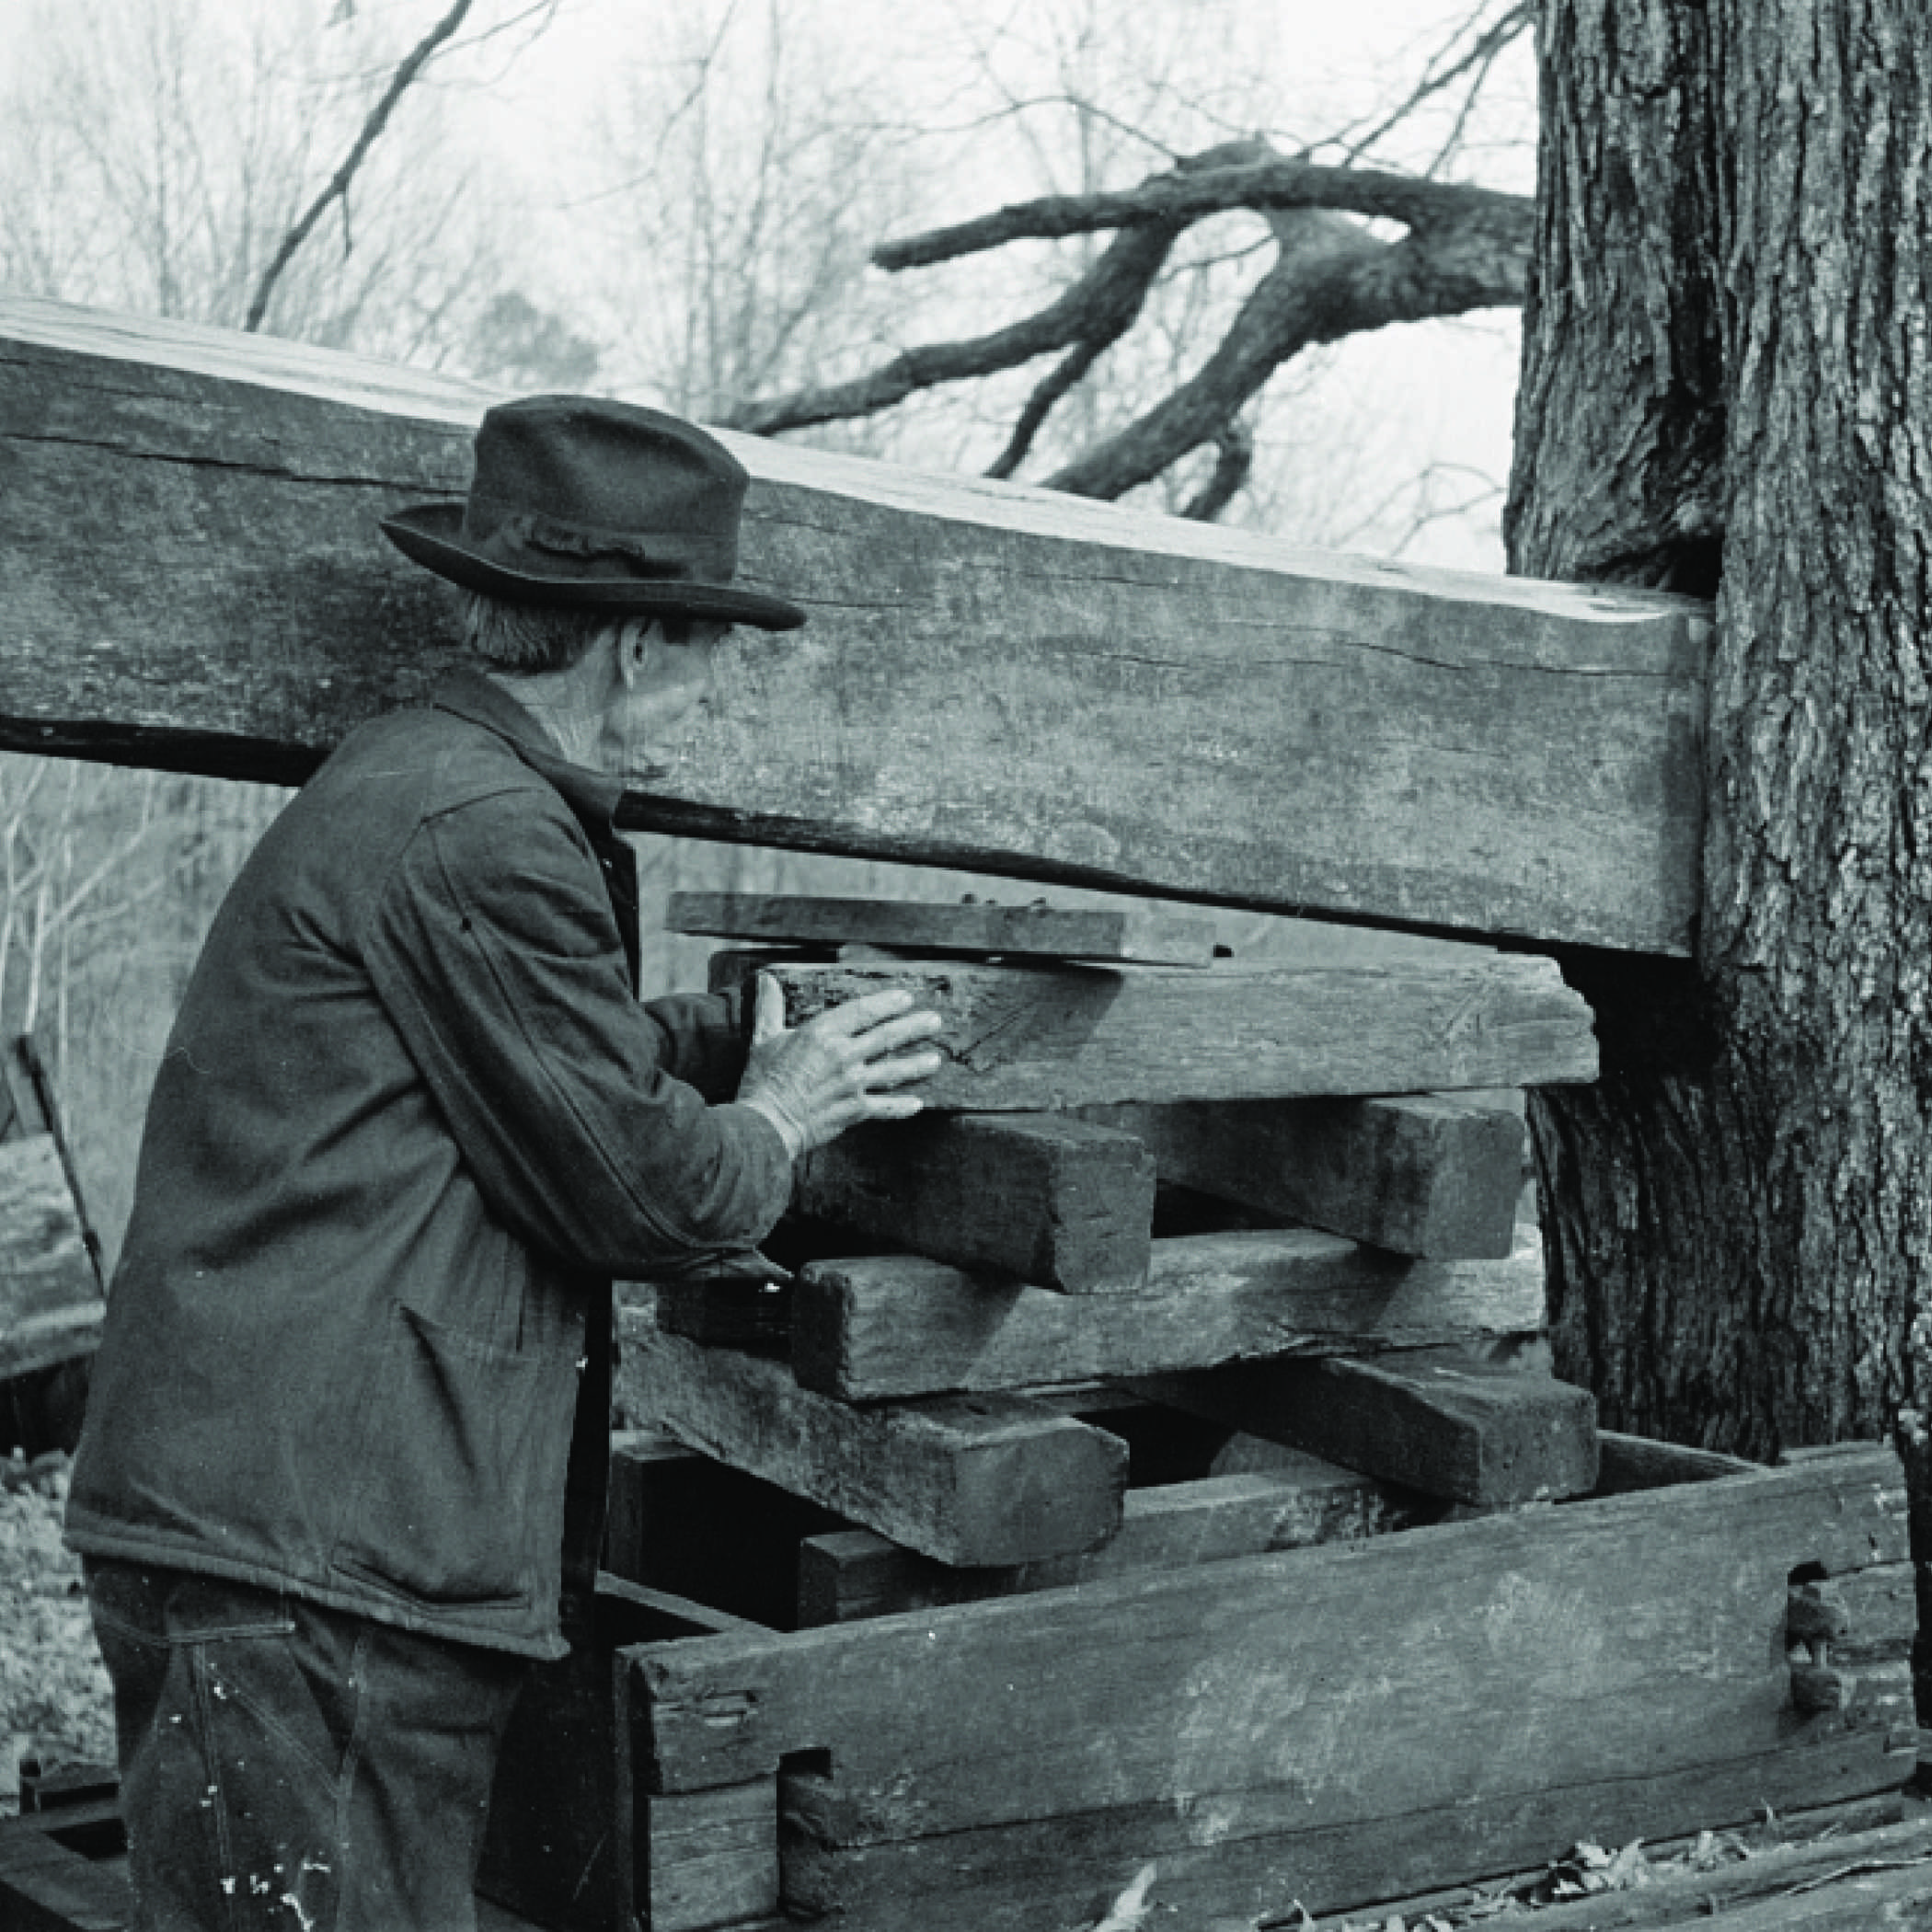 a man in the 1930s operating a cider press